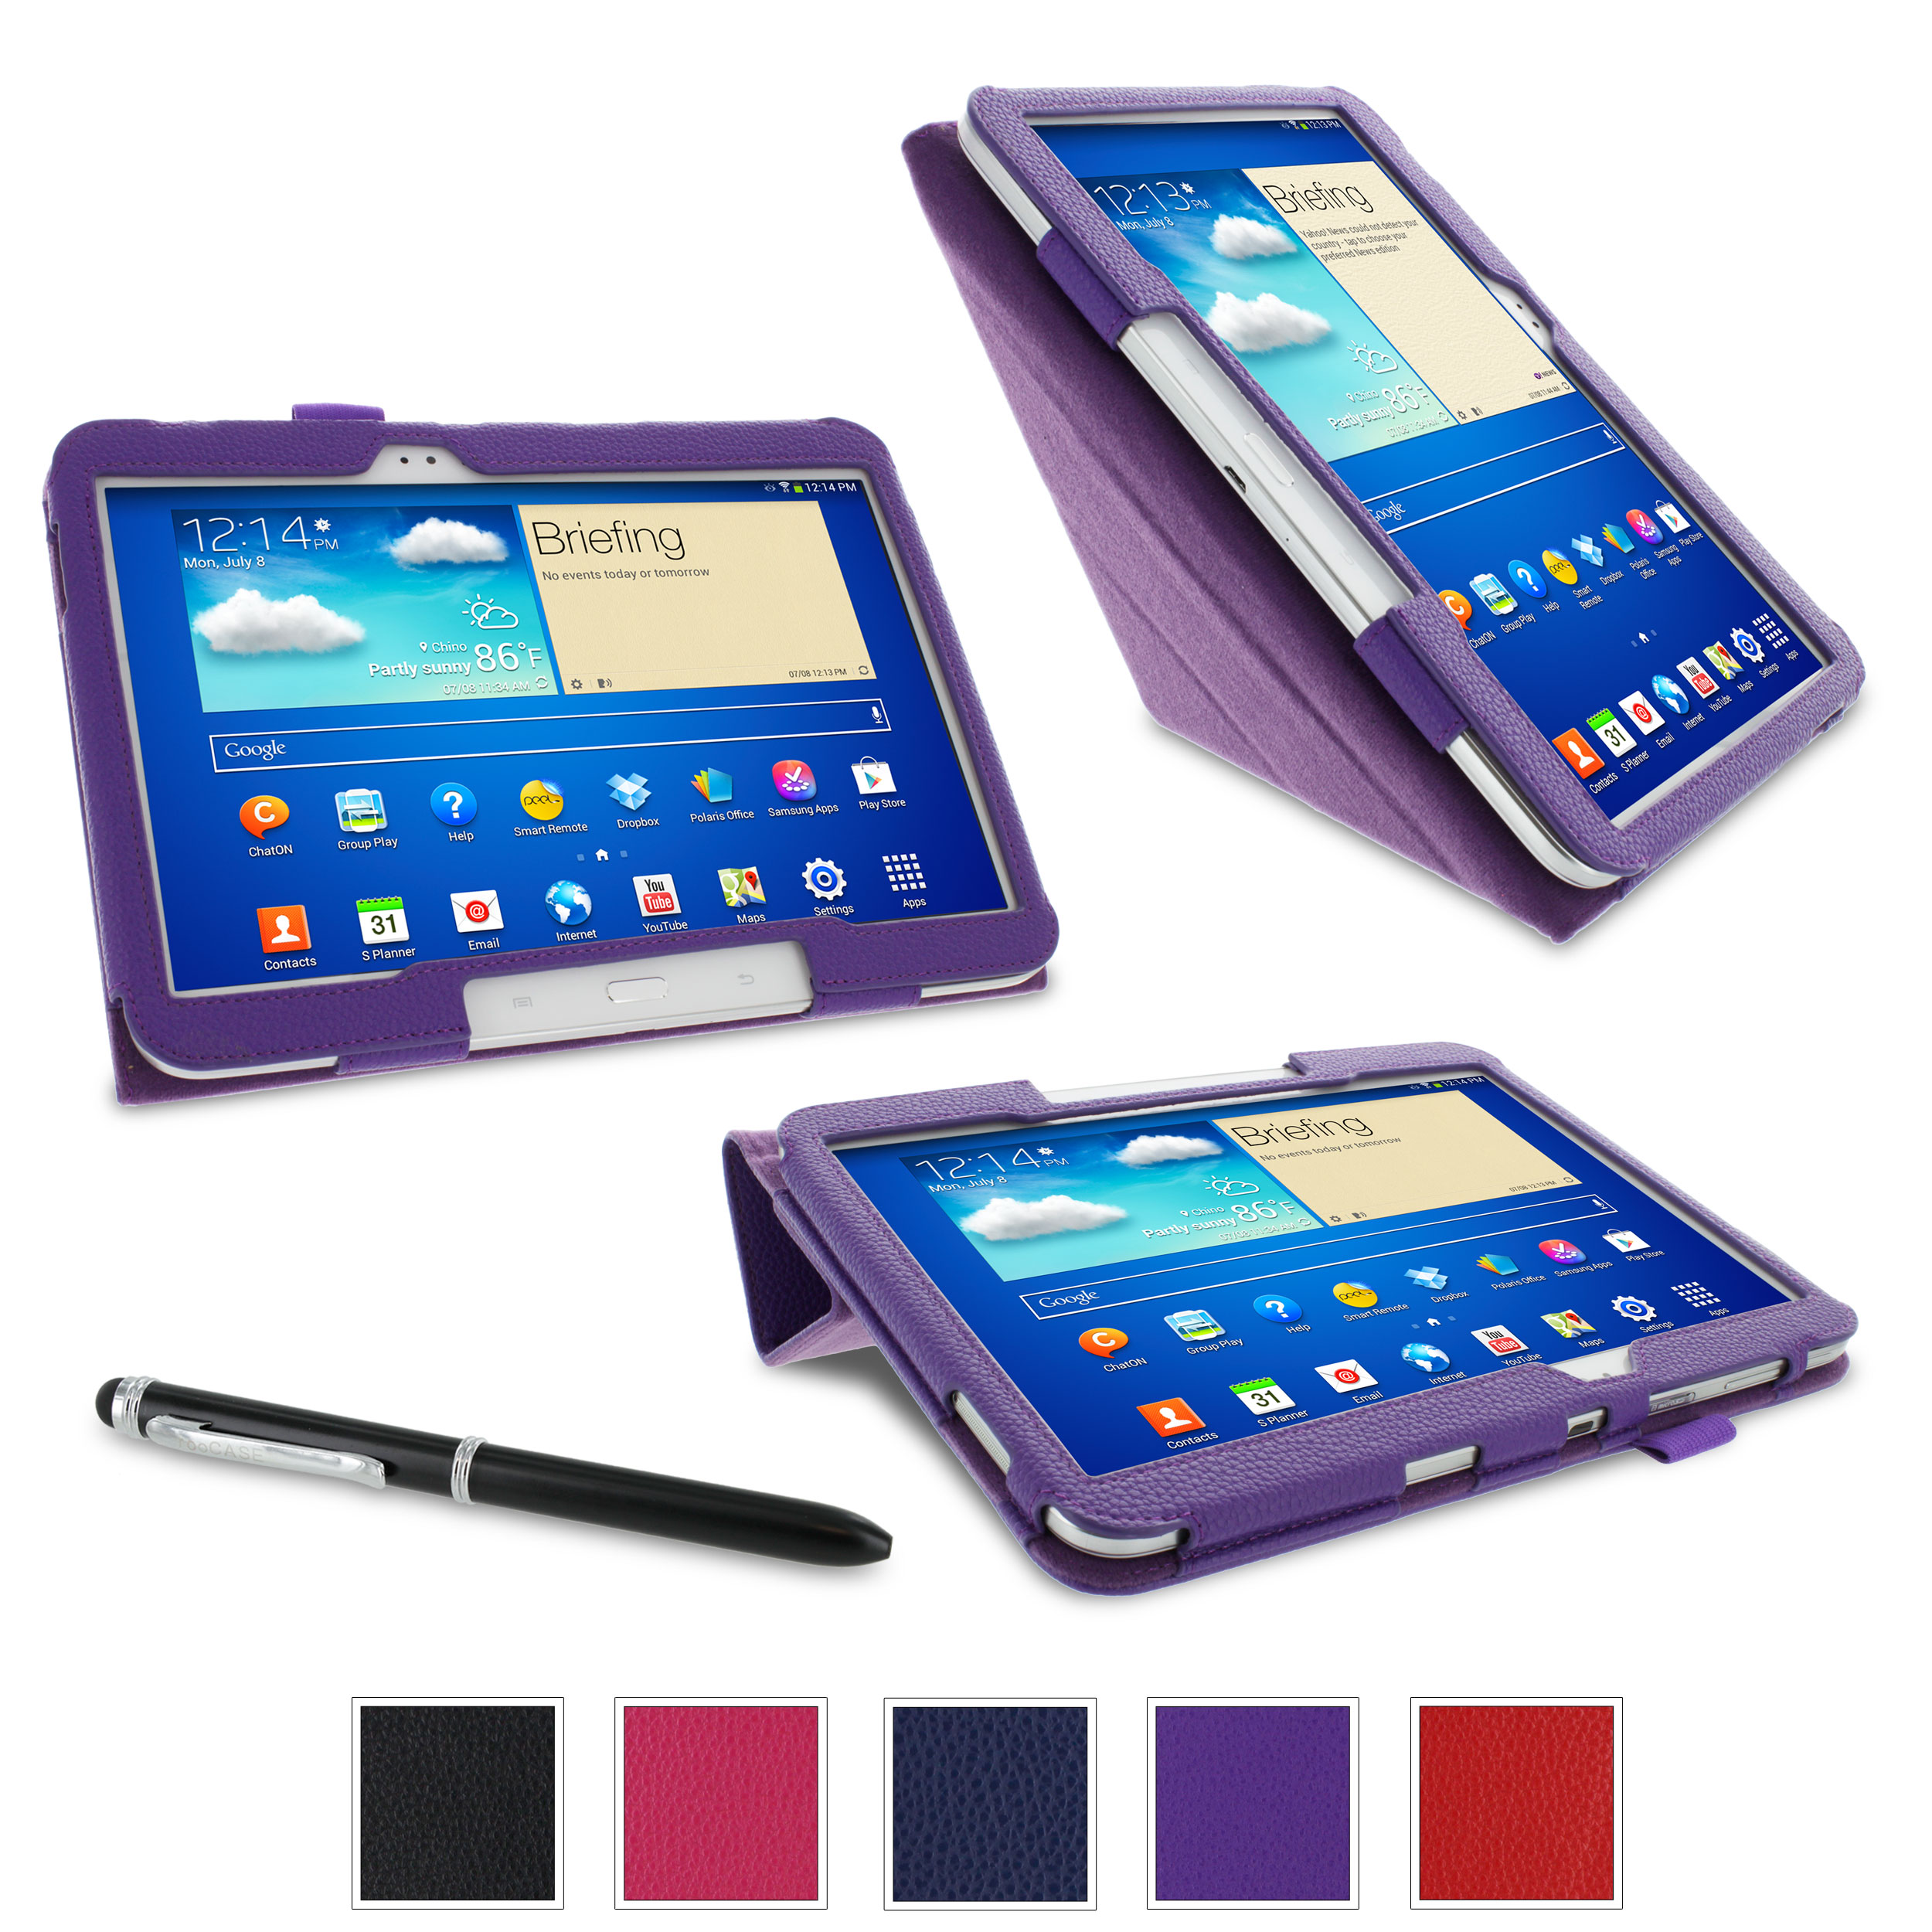 "rooCASE Samsung Galaxy Tab 3 10.1 / Galaxy Tab 4 10.1 Case - Origami PU Leather 10.1-Inch 10.1"" Cover with Landscape, Portrait, Typing Stand, Stylus - PURPLE (With Auto Wake / Sleep Cover)"